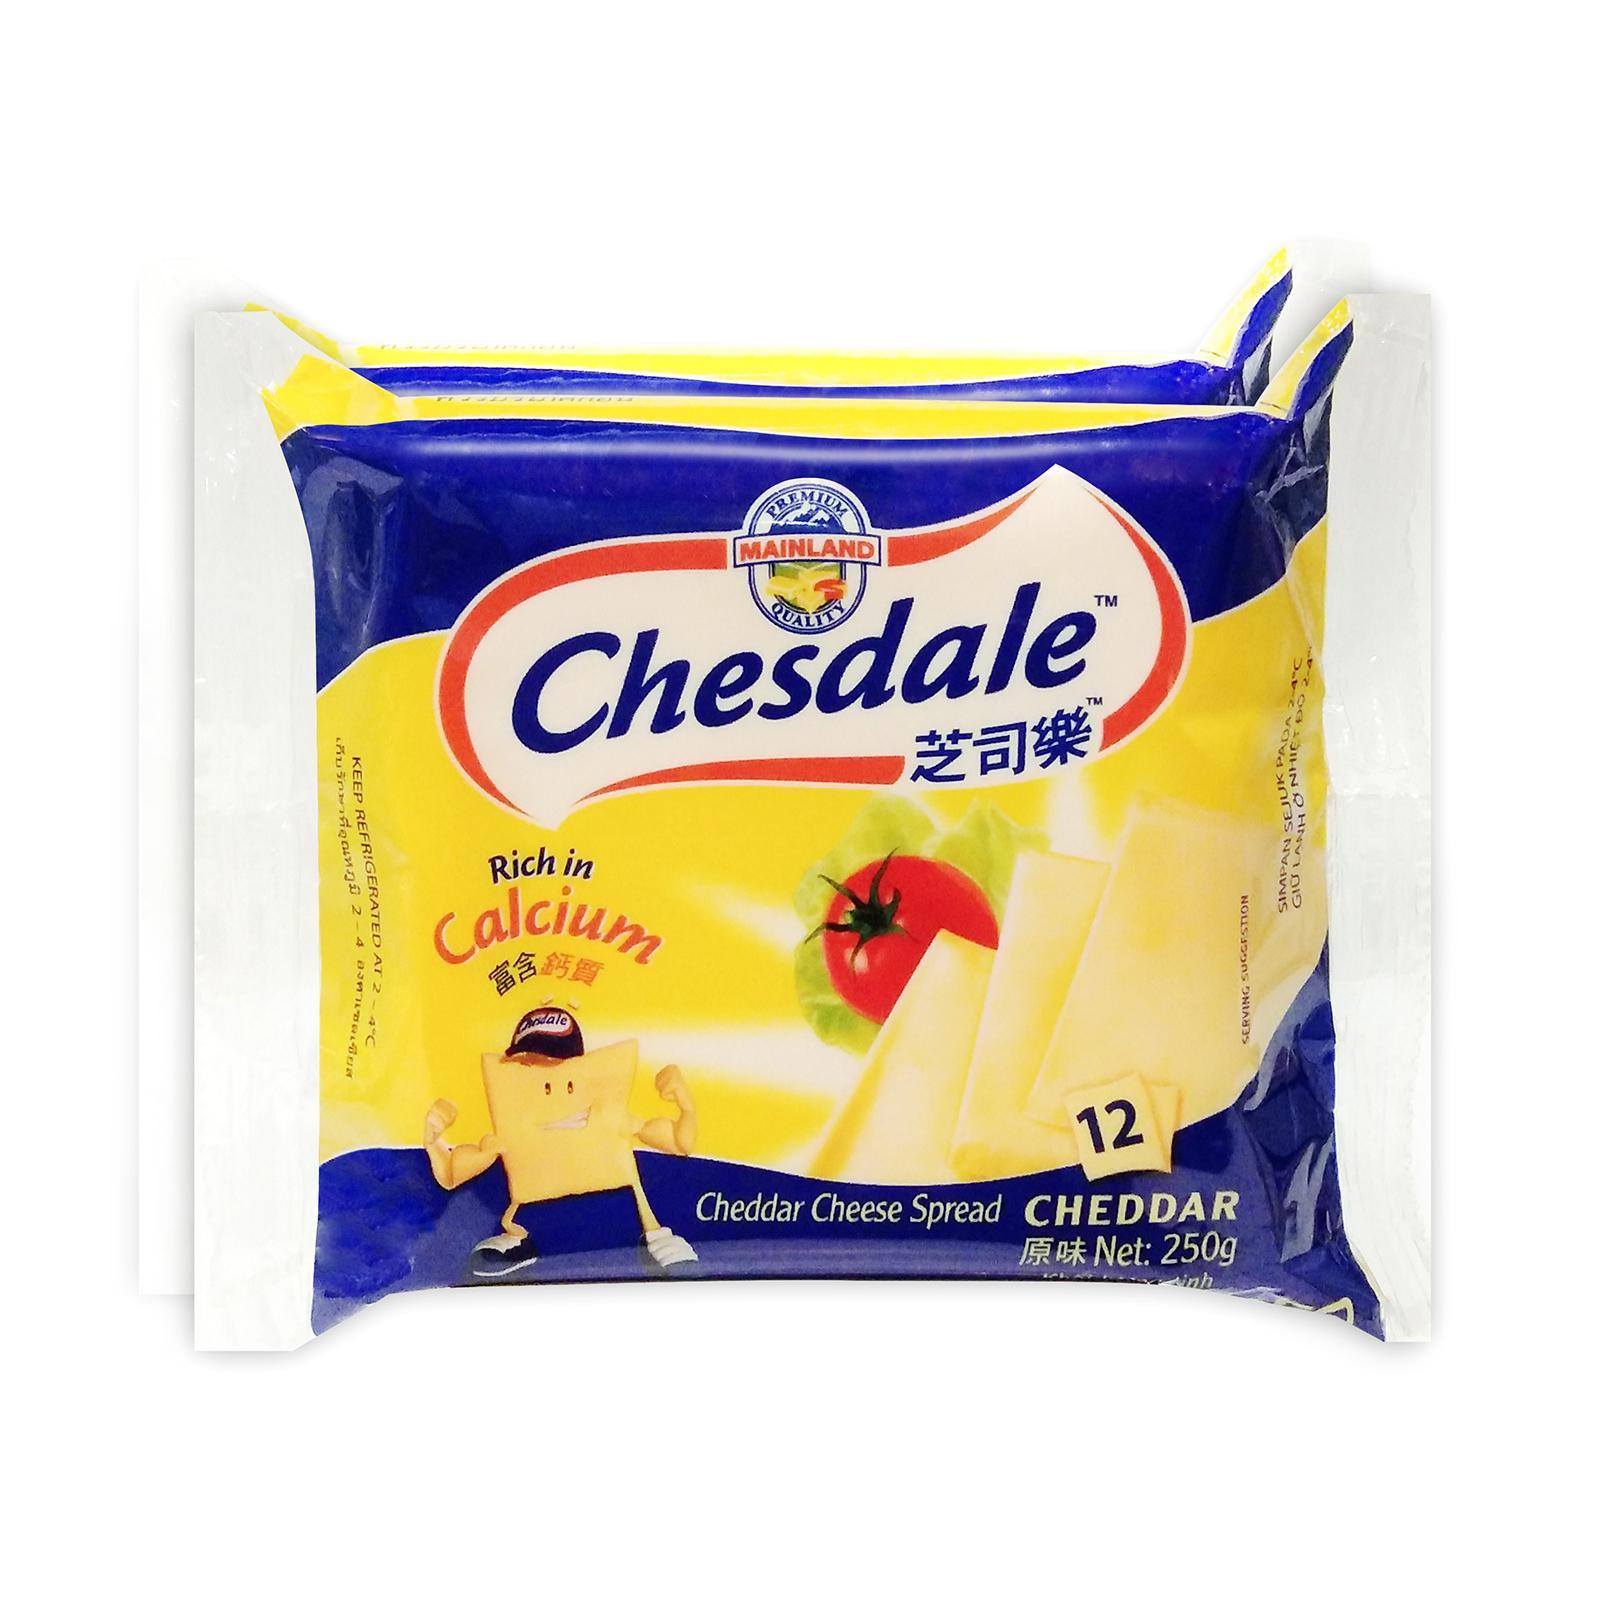 Chesdale Protein 12 Cheddar Cheese Slices (2x250G)